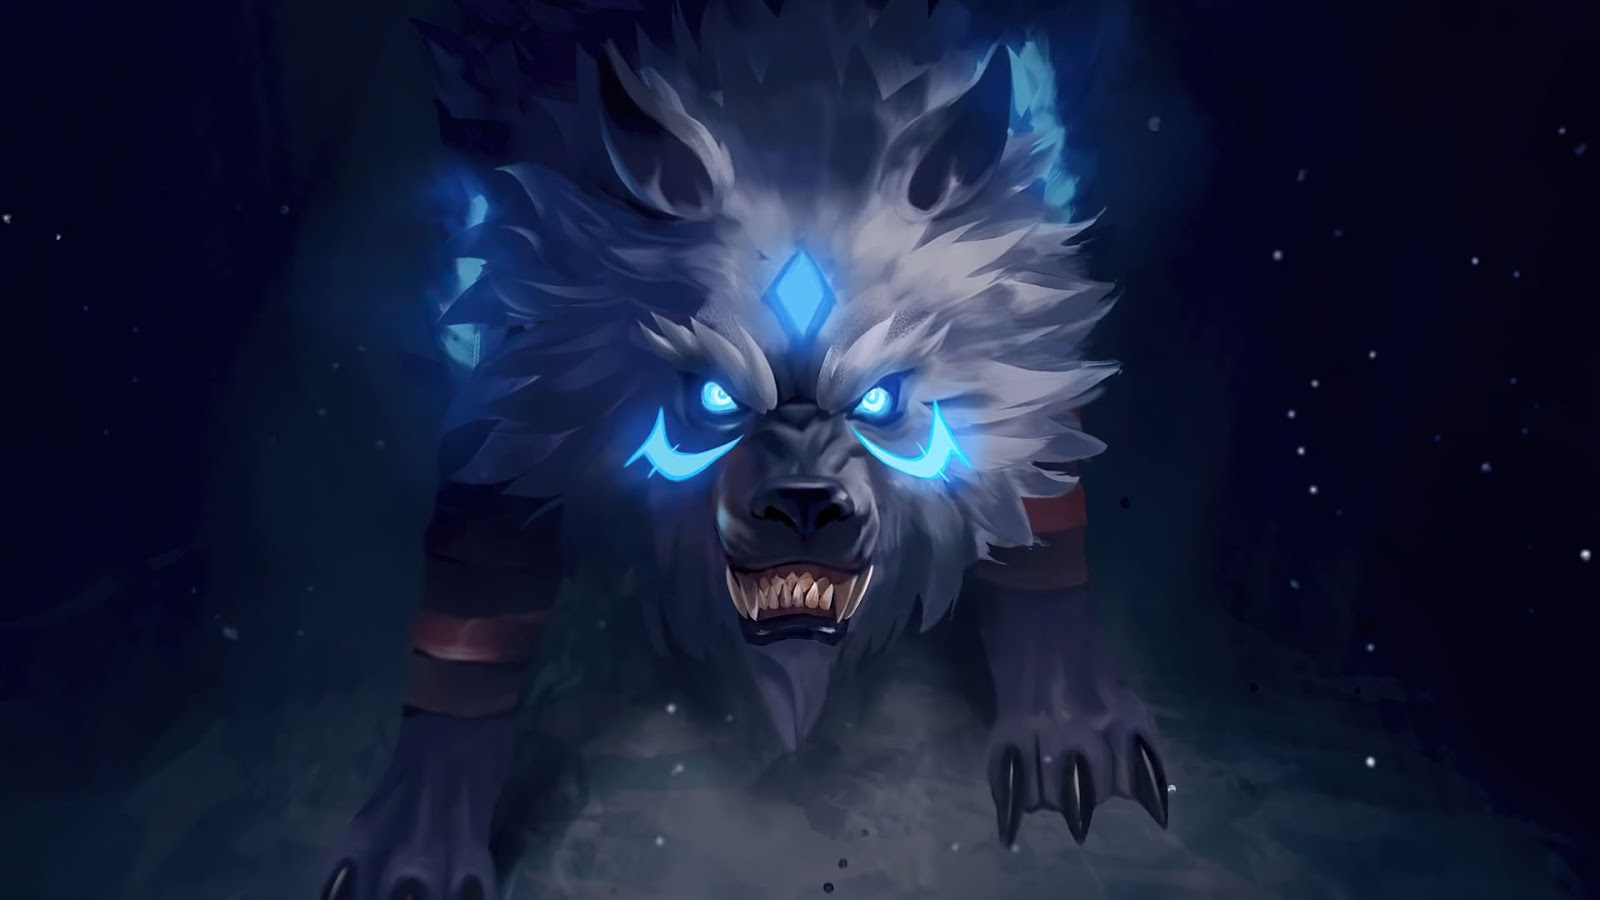 Wallpaper Popol and Kupa Wolf Mobile Legends HD for PC